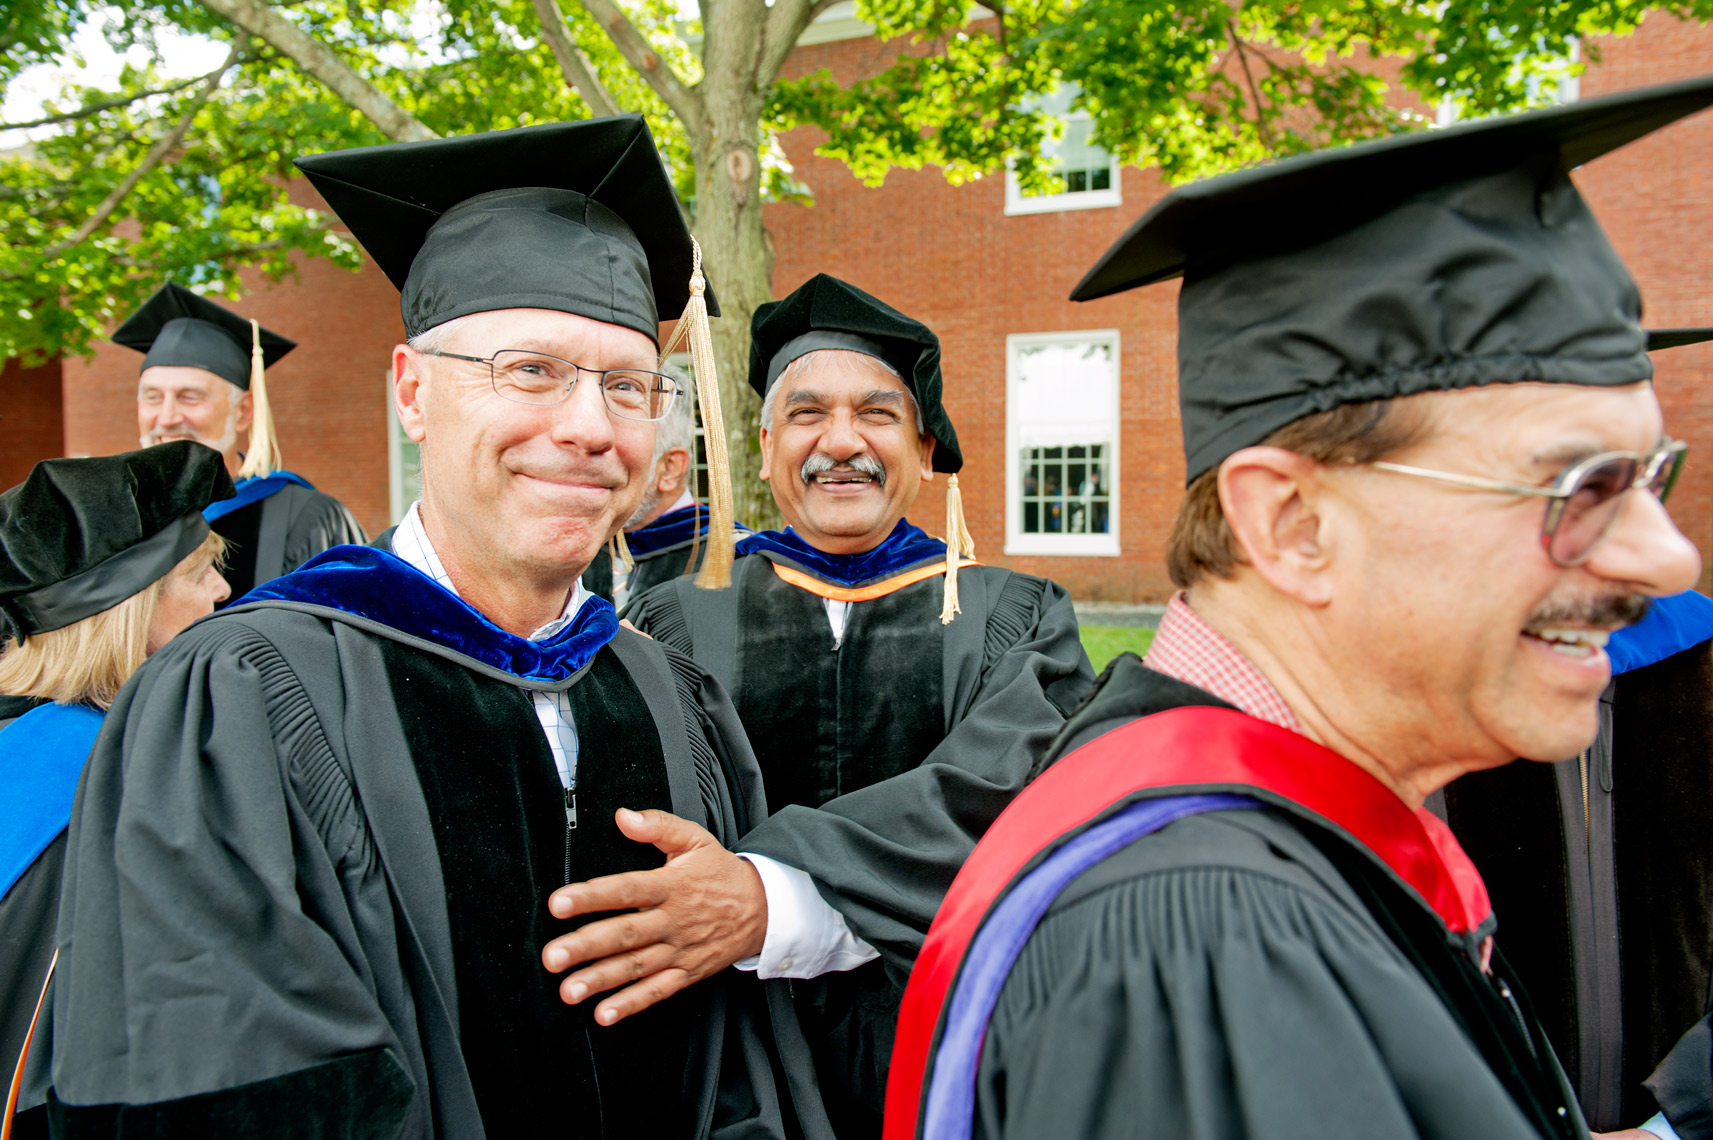 Bentley College Graduation, on campus photography